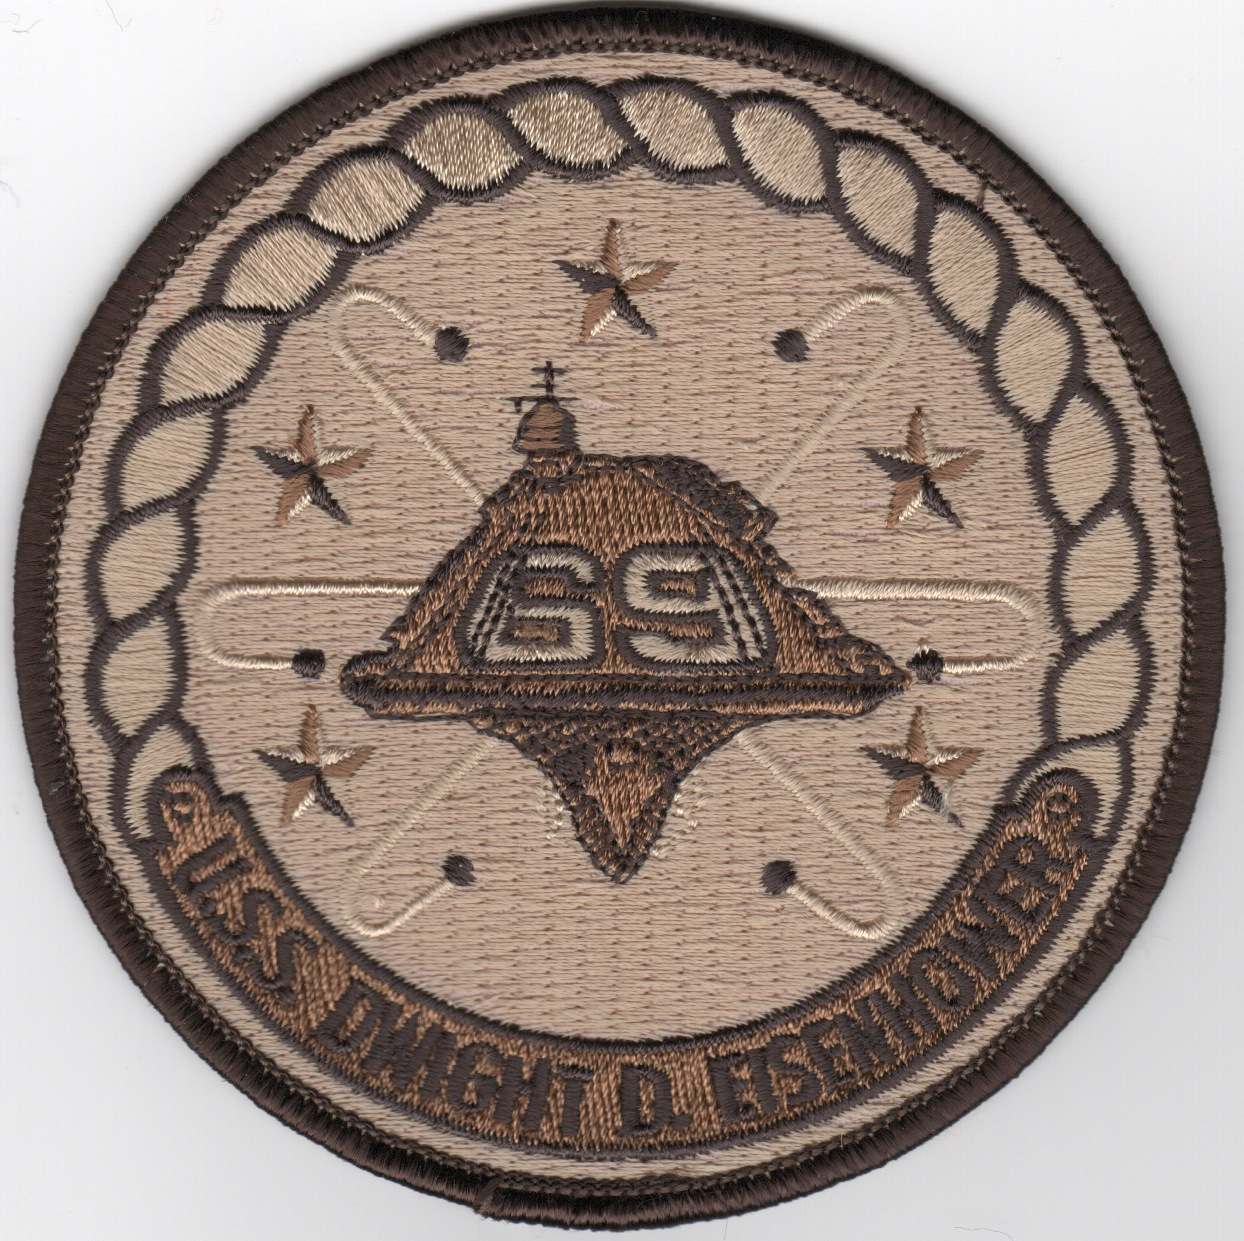 USS Dwight D. Eisenhower (CVN-69) Ship Patch (Des)